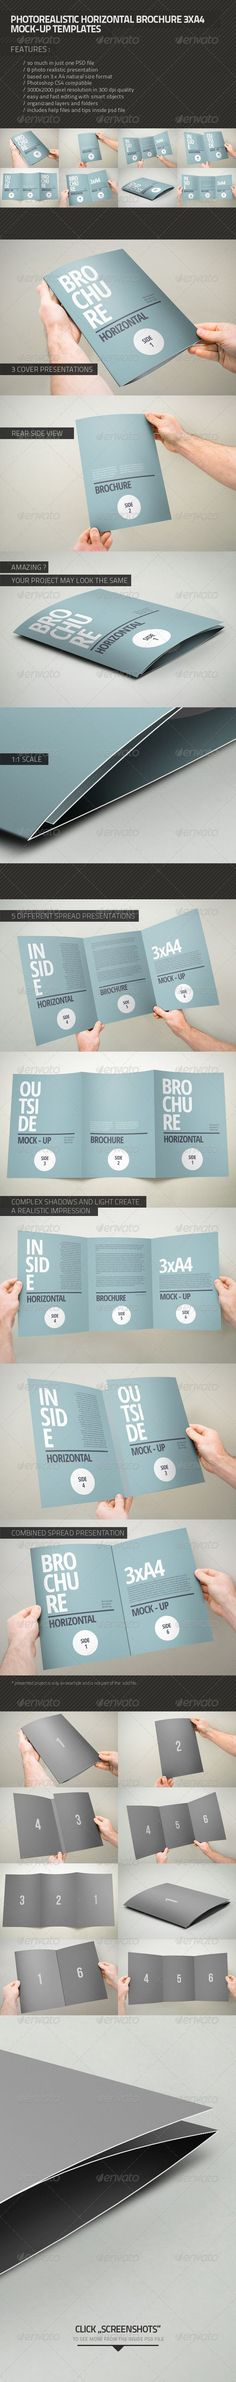 Buy Brochure Mock-up by on GraphicRiver. Photorealistic mock-up brochure template. Features 8 photo realistic presentation Photoshop compatible based on Brochure Mockup, Design Brochure, Brochure Template, Box Mockup, Mockup Templates, Design Templates, Event Flyer Templates, Presentation Templates, Mockup Photoshop